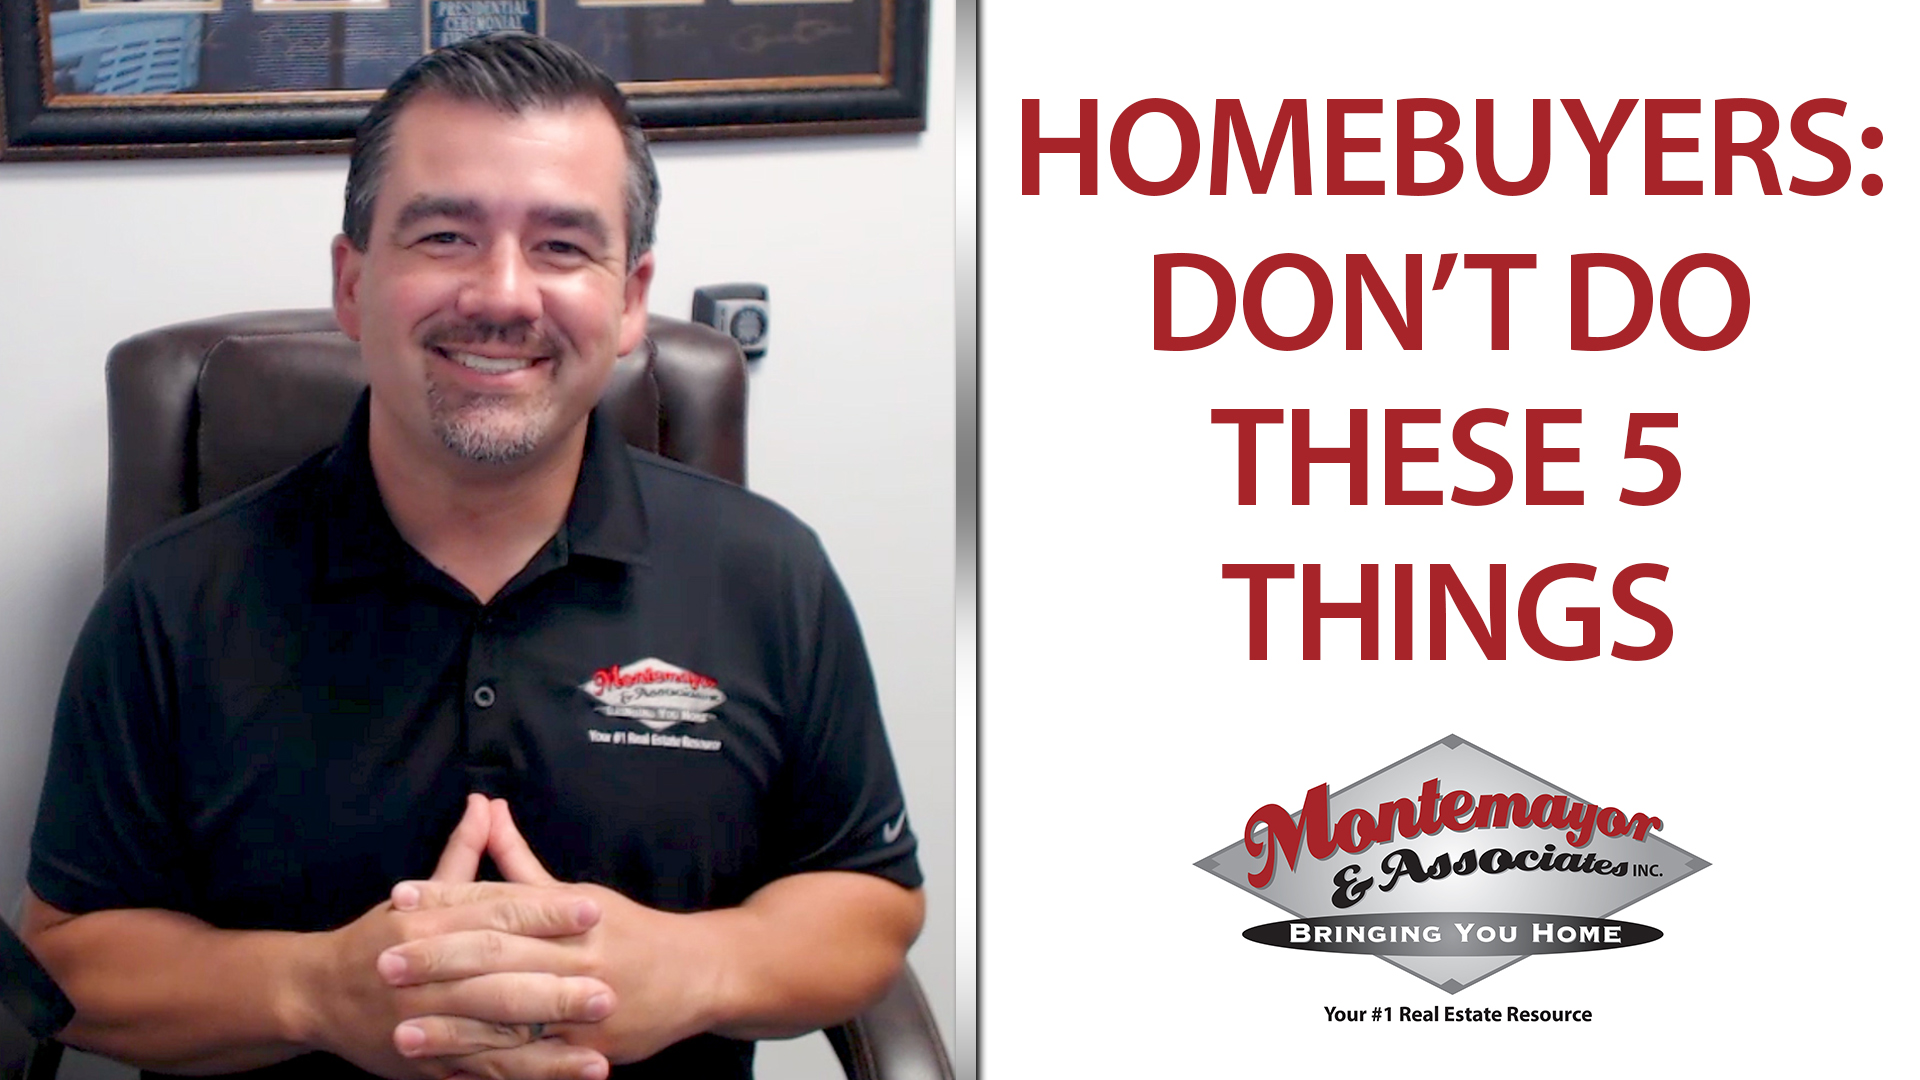 What Should I Avoid as a Homebuyer?